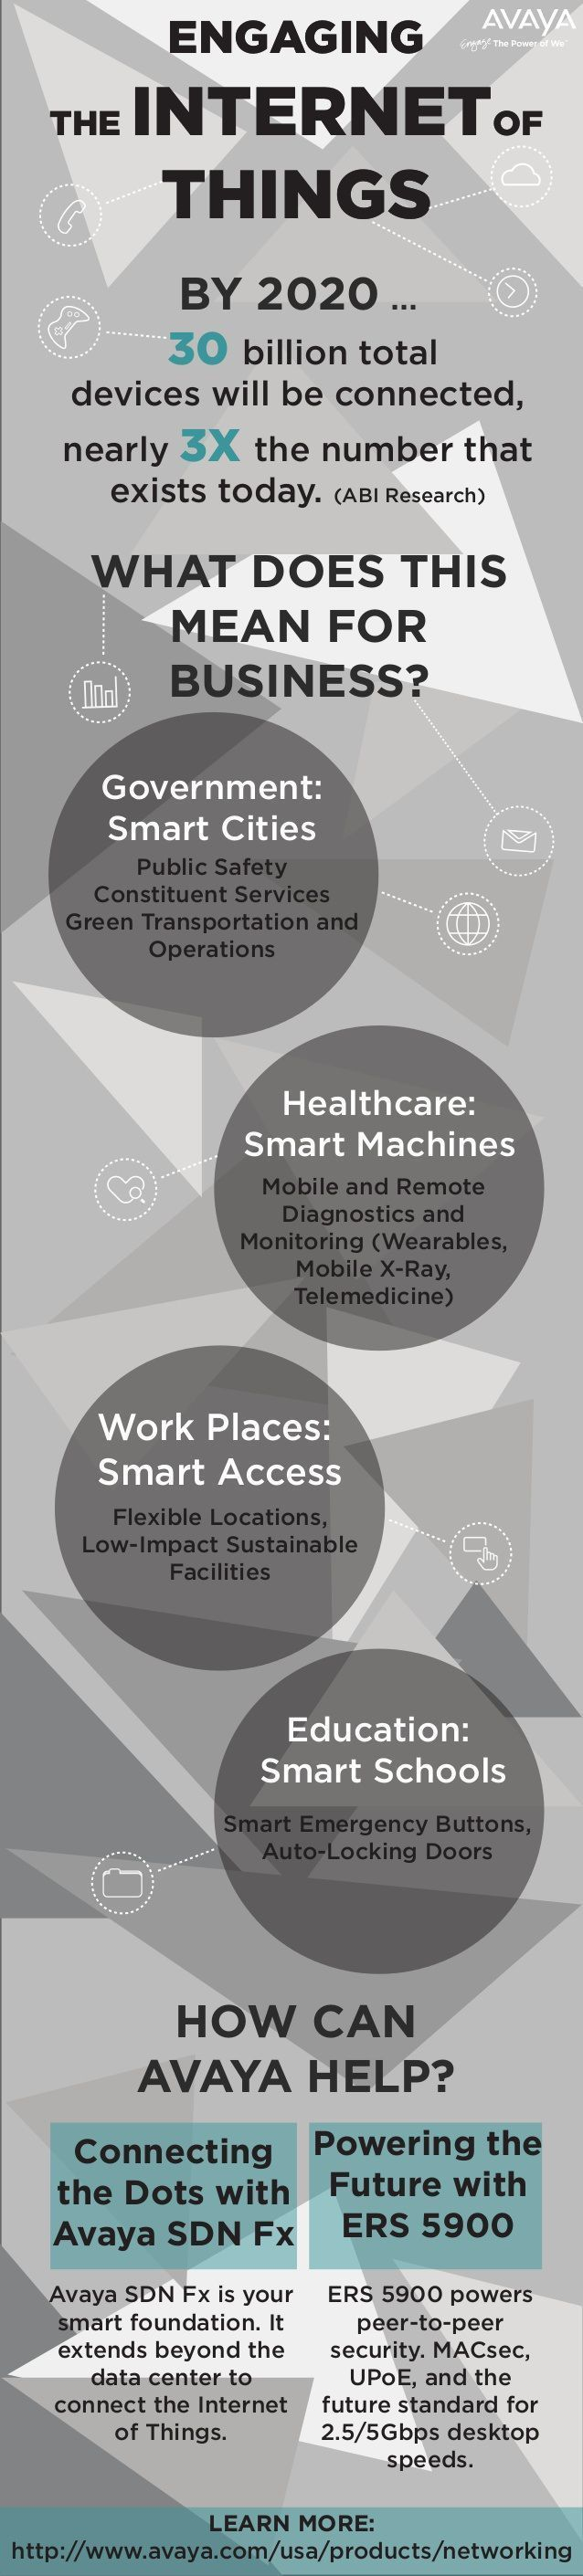 #InternetOfThings boost the industry growth by 2020 Infographic tells how all the platforms from work places,  healthcare and government to education will modify into smarter places by #digitization. #homeschoolinginfographic